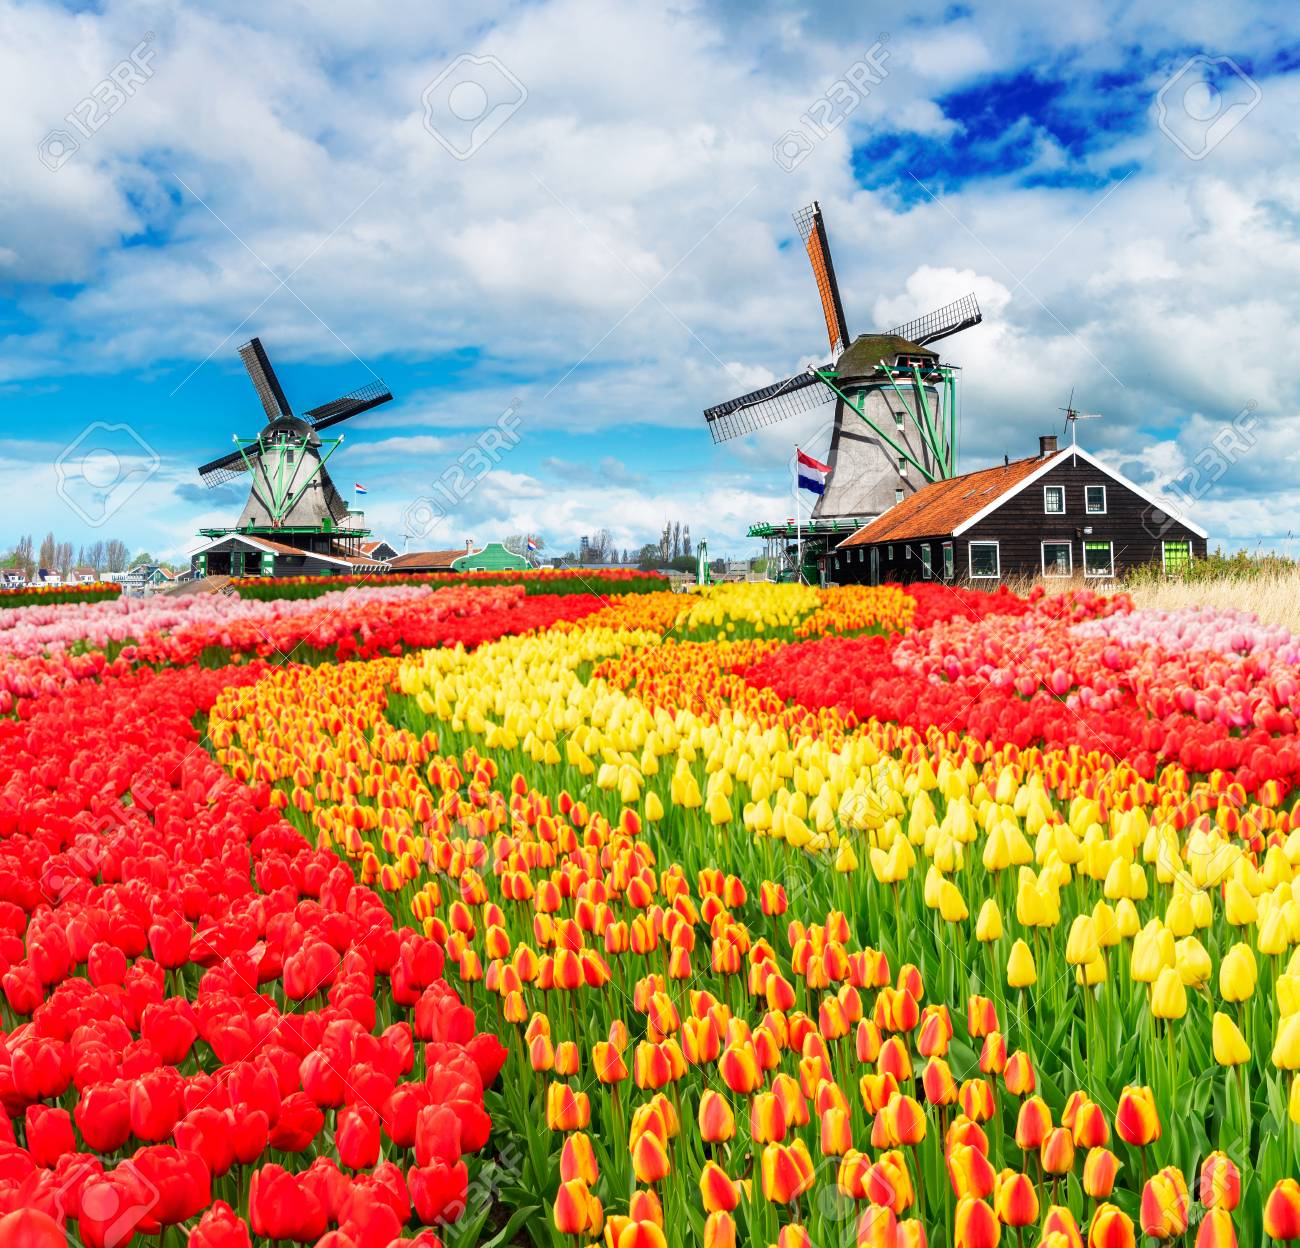 two traditional Dutch windmills of Zaanse Schans and rows of fresh tulips, Netherlands - 88133919